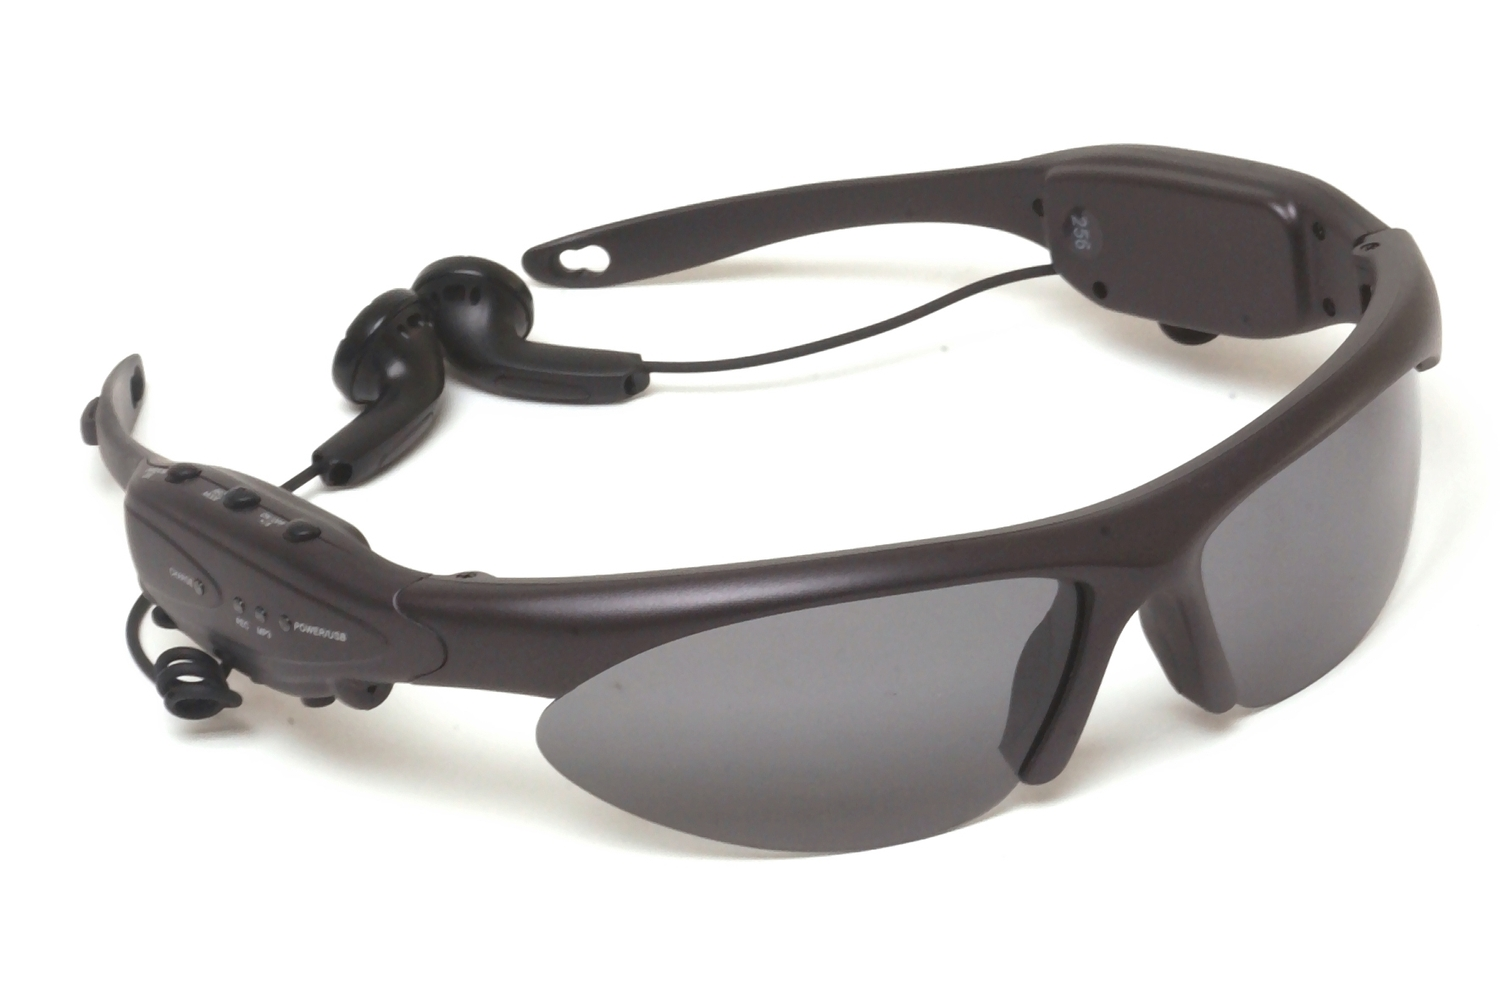 oakley thump sunglasses 3xm5  NU Dark Shadow Mp3 Sunglasses Review: